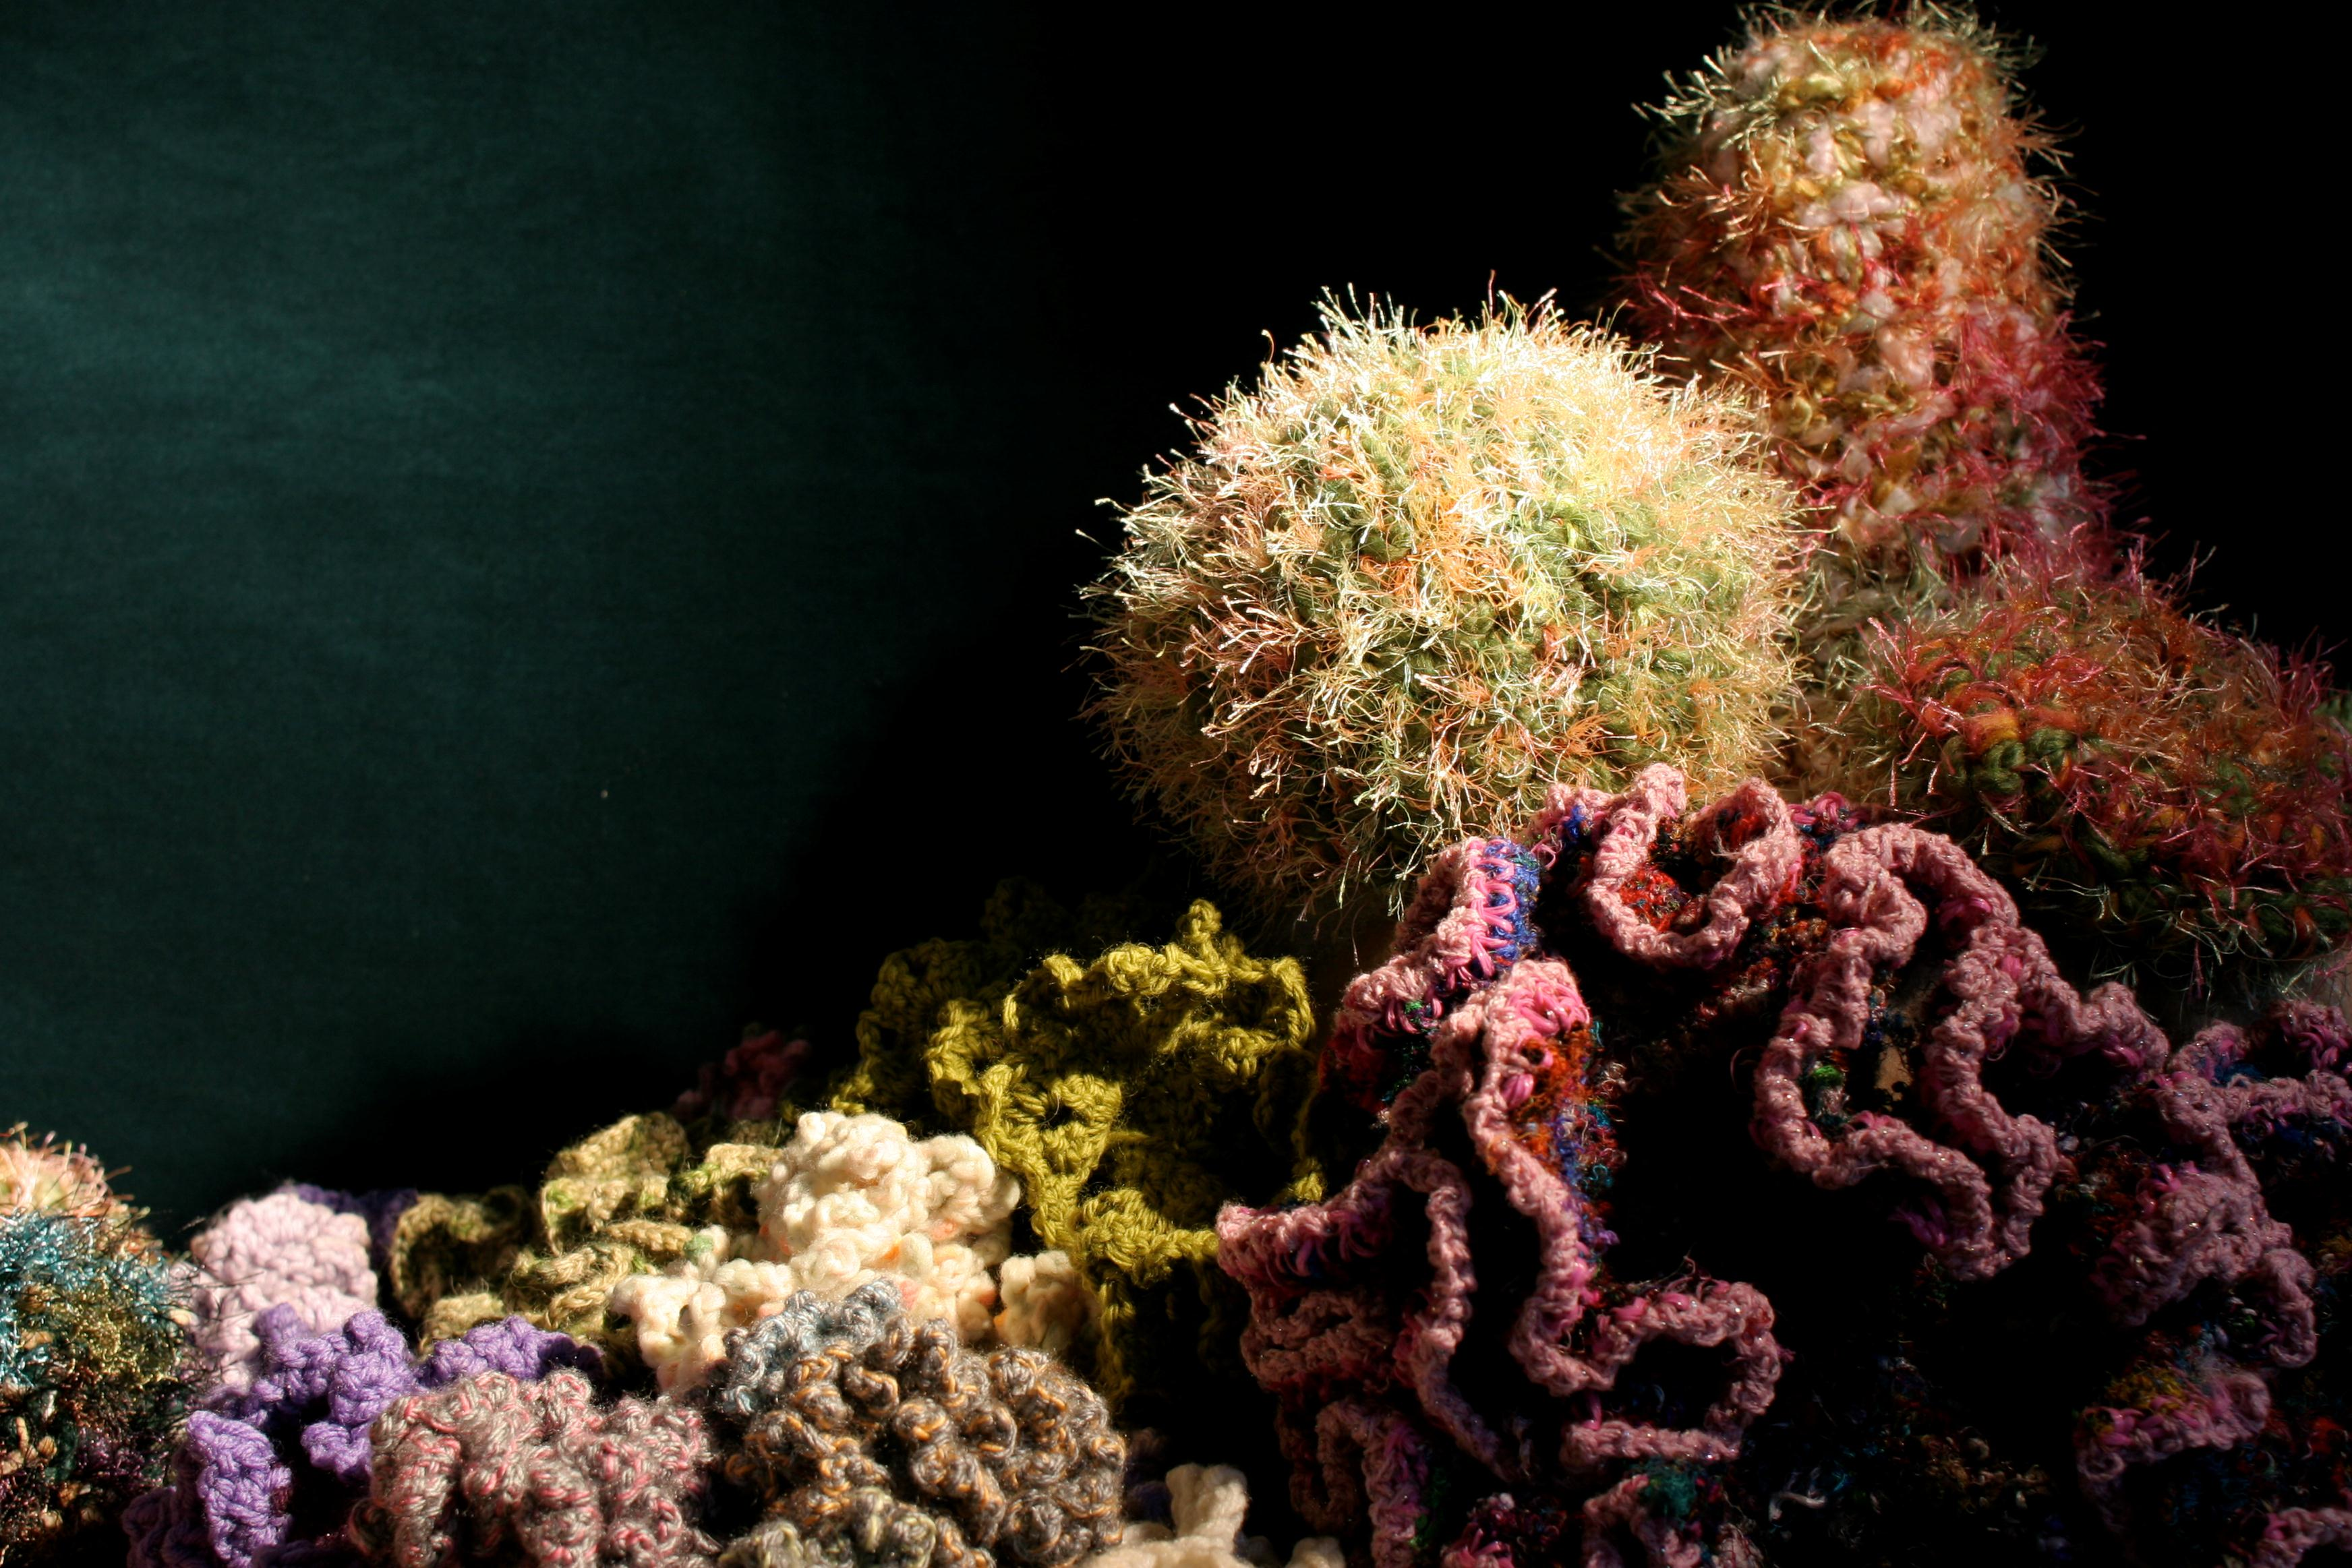 Crochet Coral Reef by Margaret and Christine Wertheim and the Institute For Figuring (featuring sea slug by Marianne Midelberg). Photo © IFF by Alyssa Gorelick.